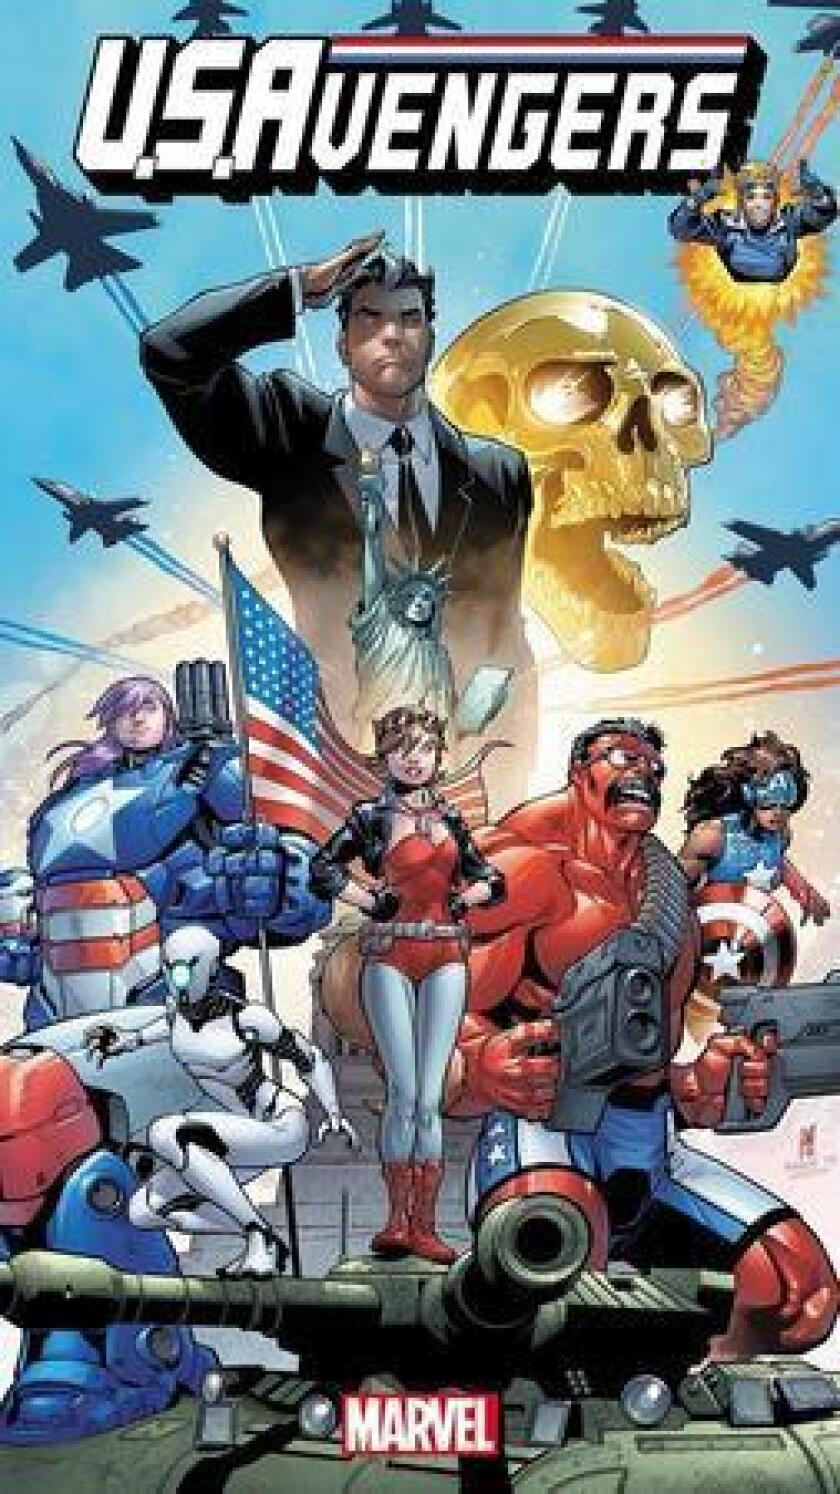 Marvel Comics will debut some of its latest comics at San Diego Comic-Con 2016. Pictured: U.S.Avengers No.1, art by Paco Medina. (Marvel Comics)